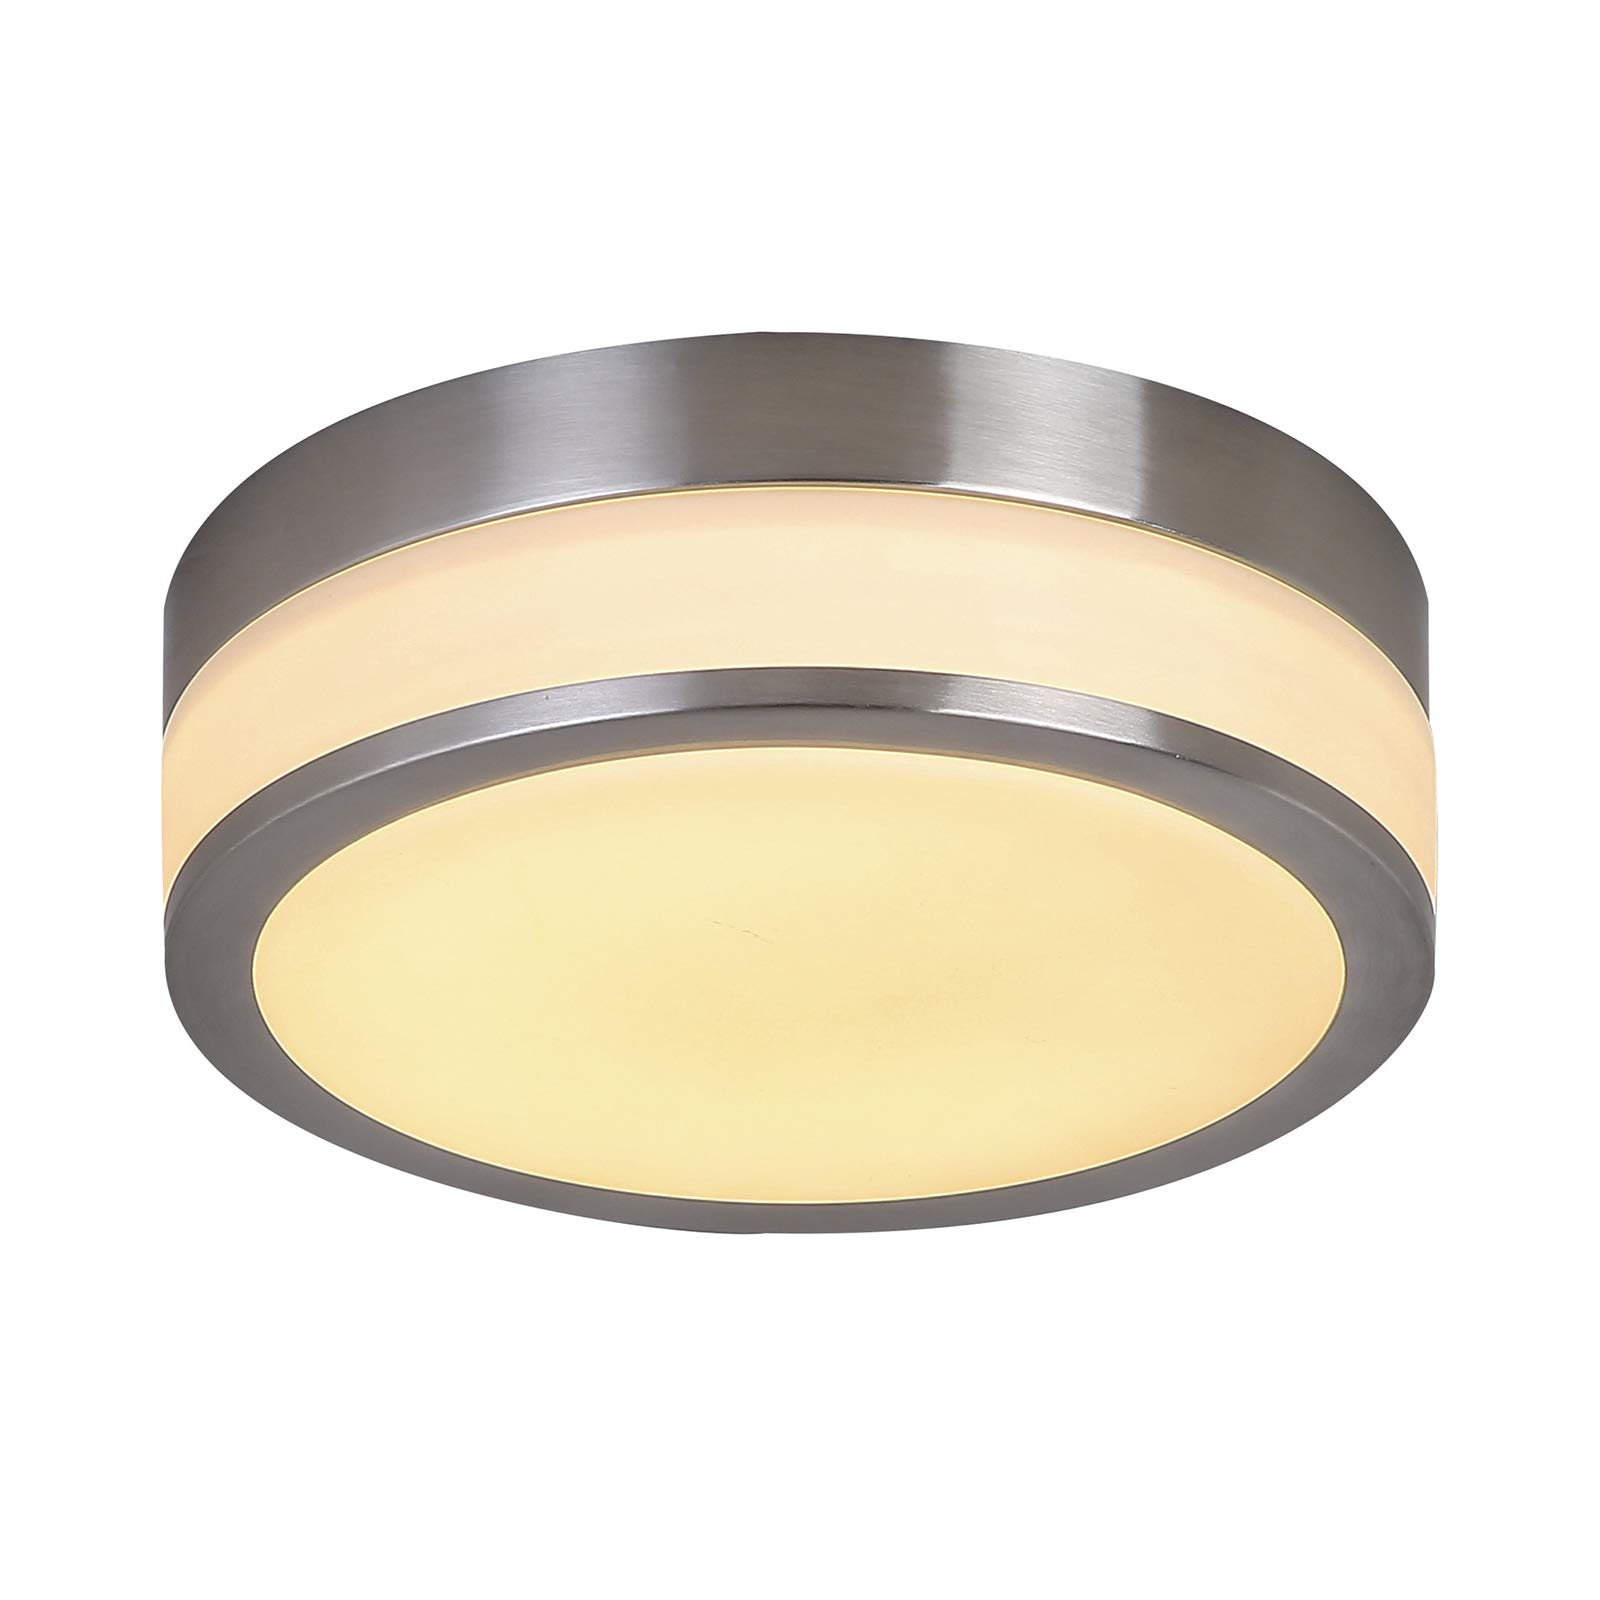 Auffel Glass Shade LED Ceiling Light,Morden Flush Mount Dimmable Light Fixture,Metal Frame Round Decor Fixtures,3000K Warm White 1320ML100W Incandescent Bulbs Equivalent for Bedroom,Balcony,Bathroom,